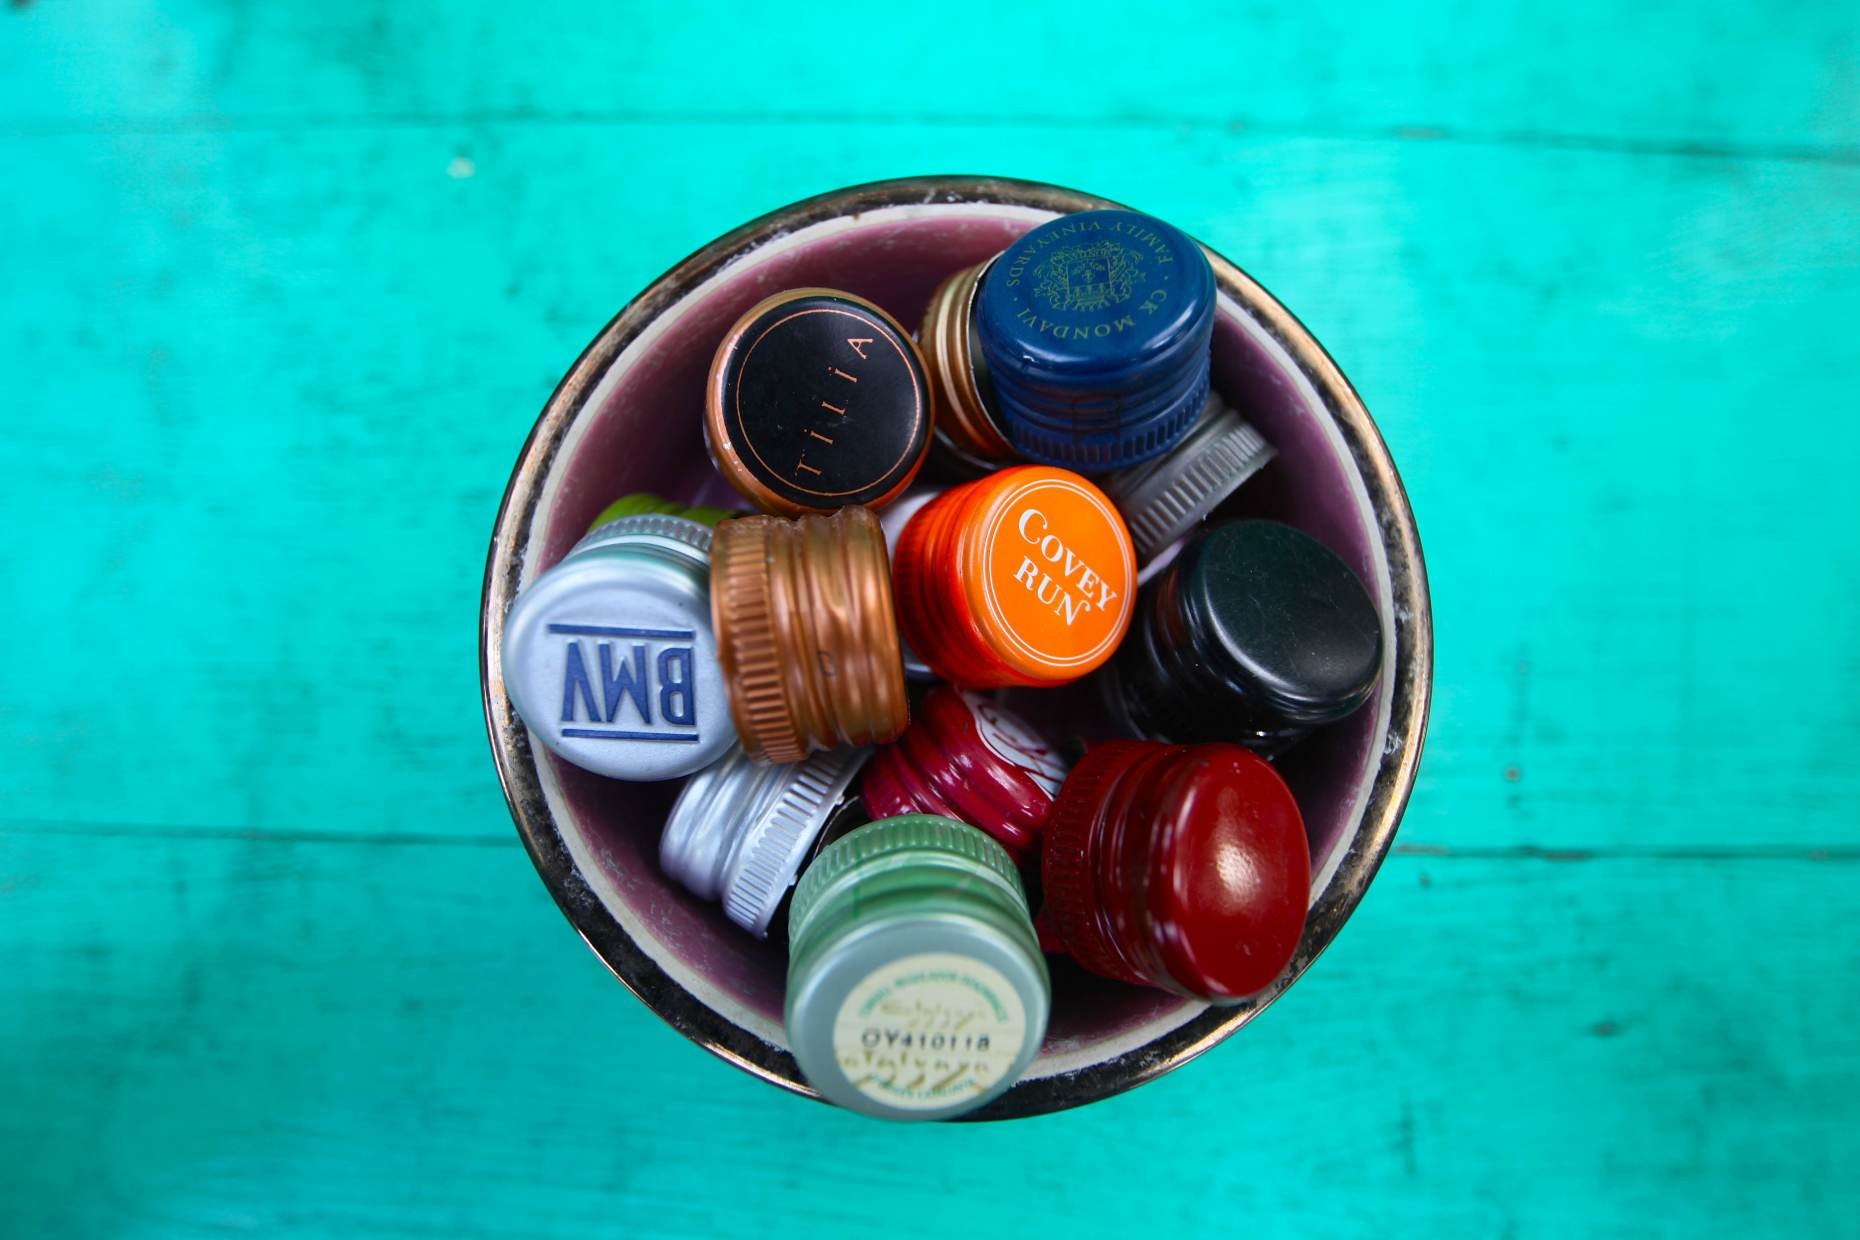 What Do We Do With Our Metal Screw Top Caps? Photo © Liesl Clark